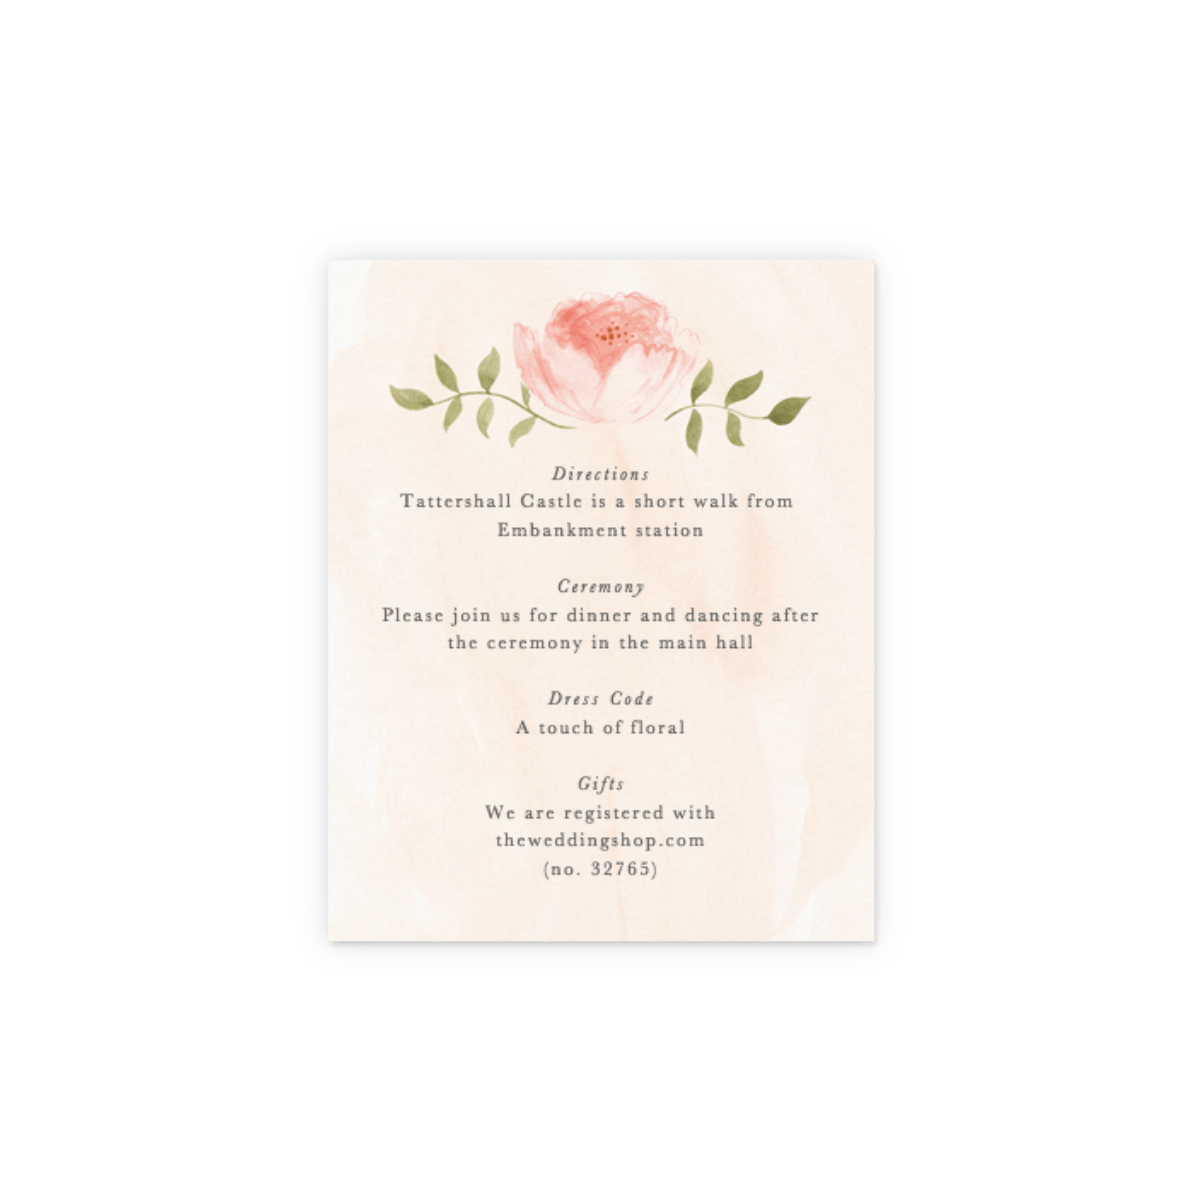 Https%3a%2f%2fwww.papier.com%2fproduct image%2f20487%2f9%2fblooming peonies 5240 info card 1535560087.png?ixlib=rb 1.1